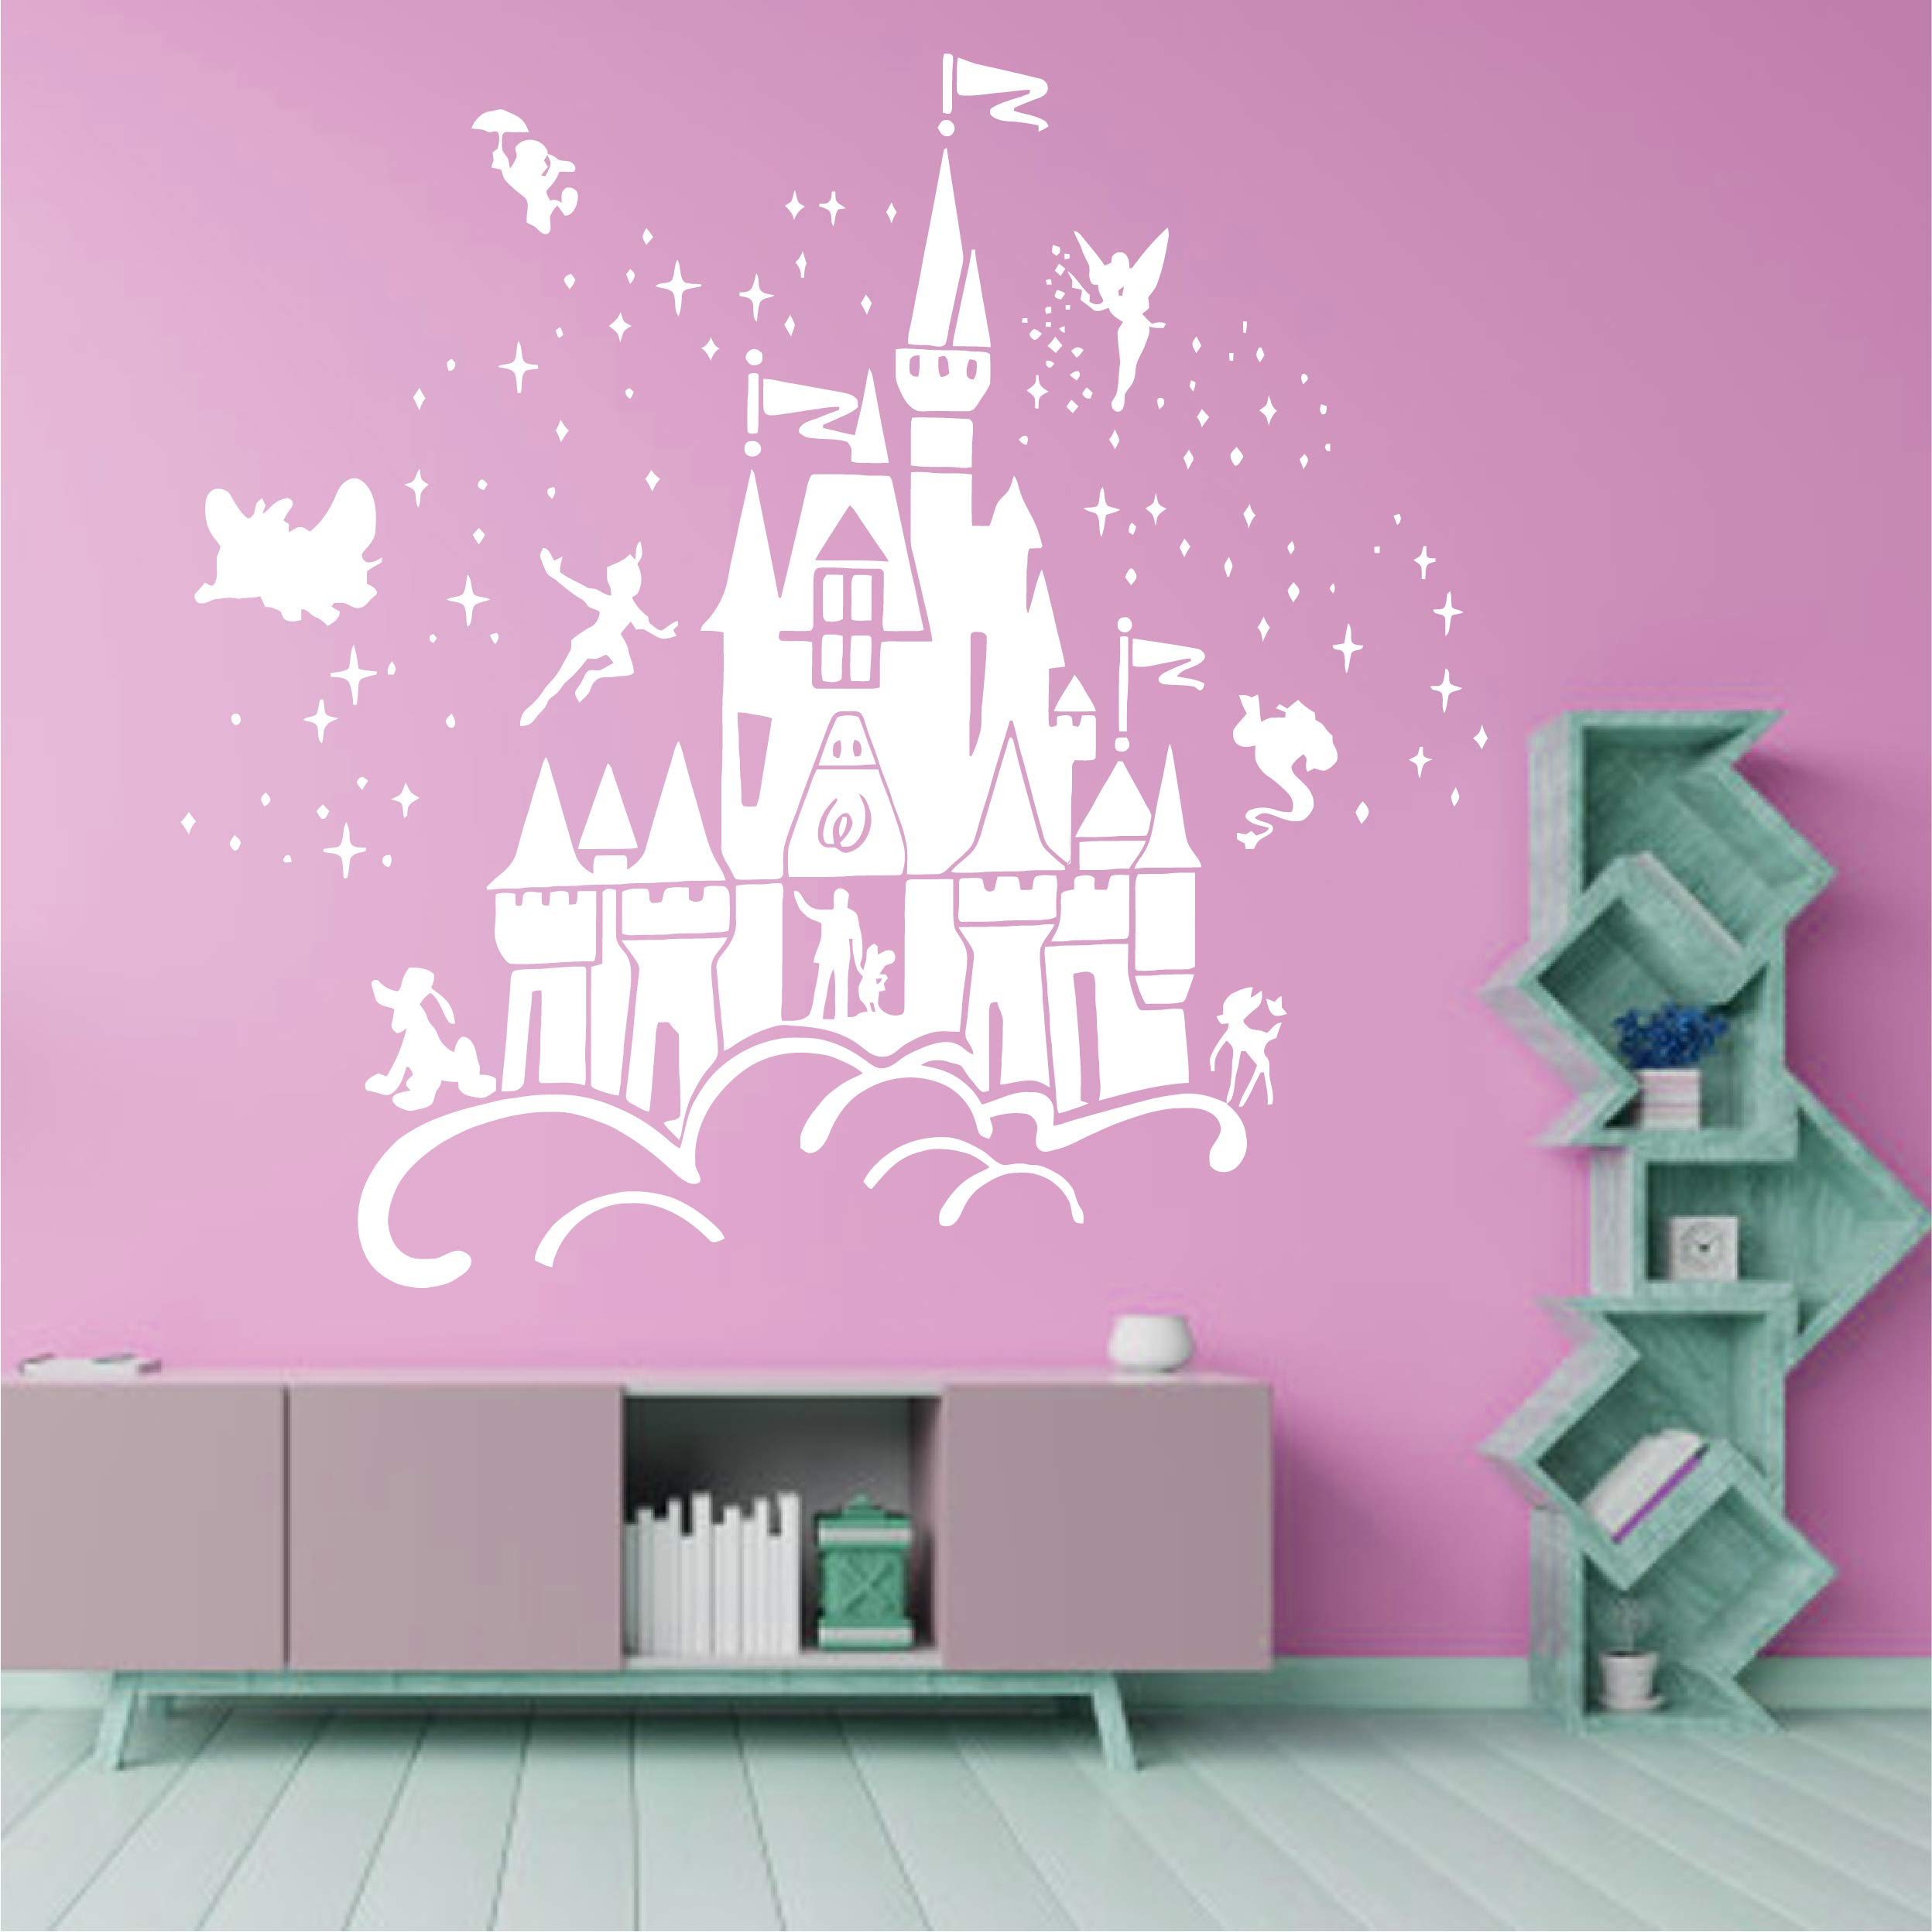 Best Design Amazing Decals Floating Disney Fairy Castle Wall Sticker Vinyl Decal Wall Art for Nurseries Size is 36''x34'' McBcK001 by Best Design Amazing